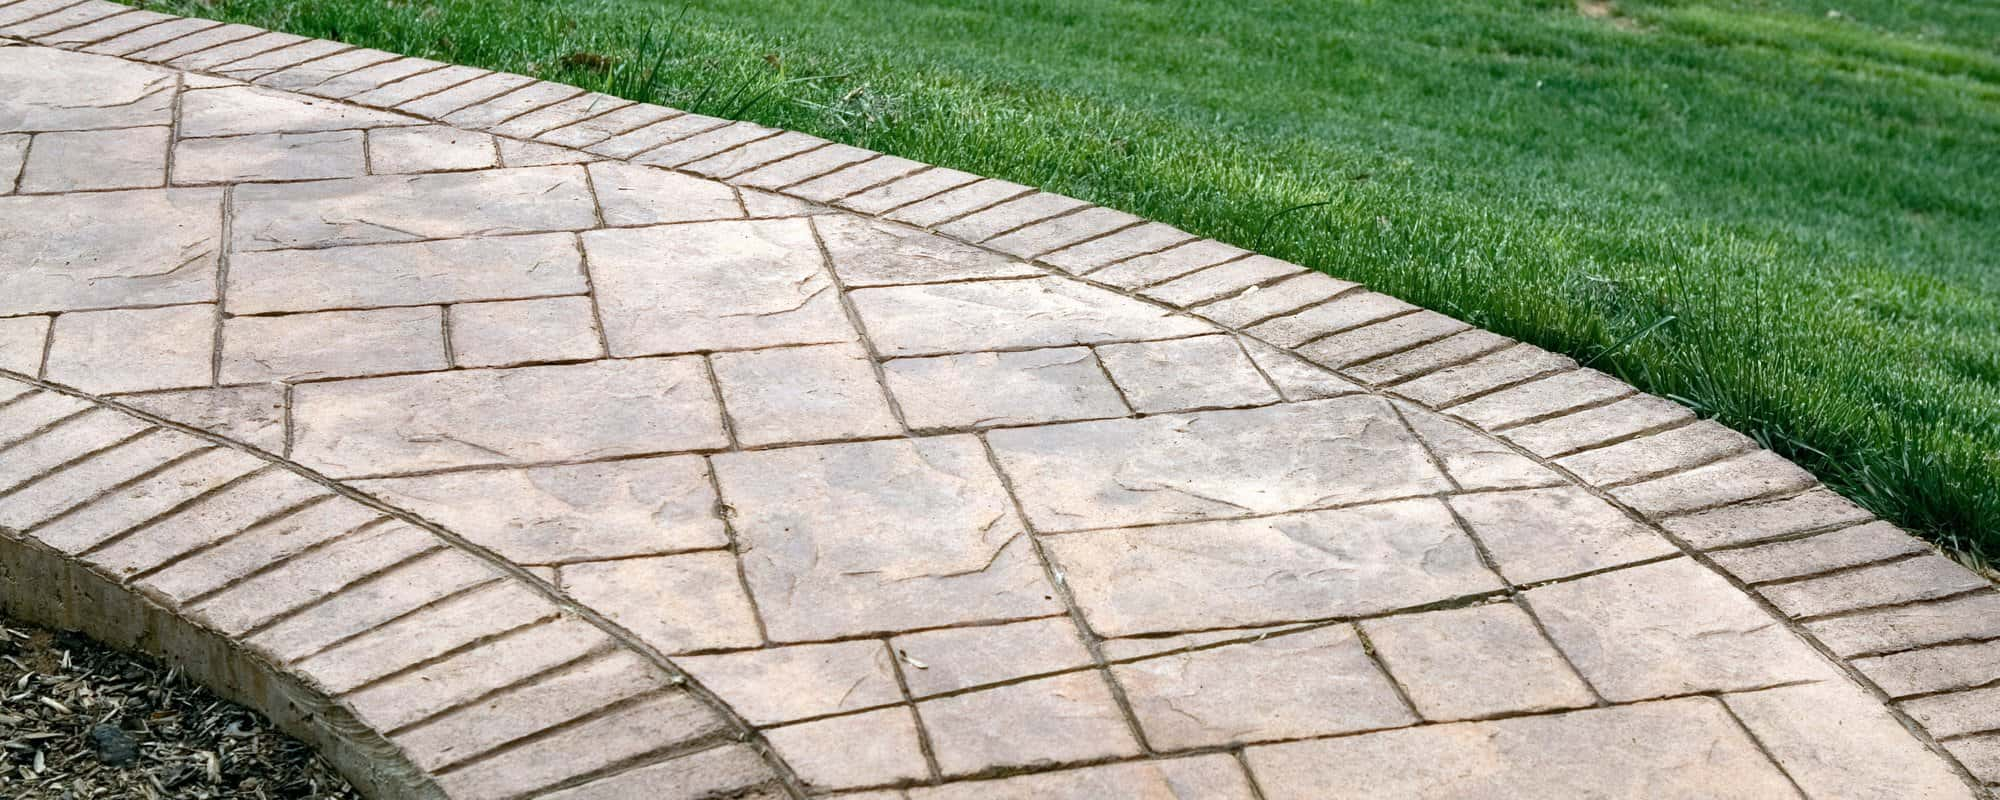 Concrete Contractor Company in St. Louis County